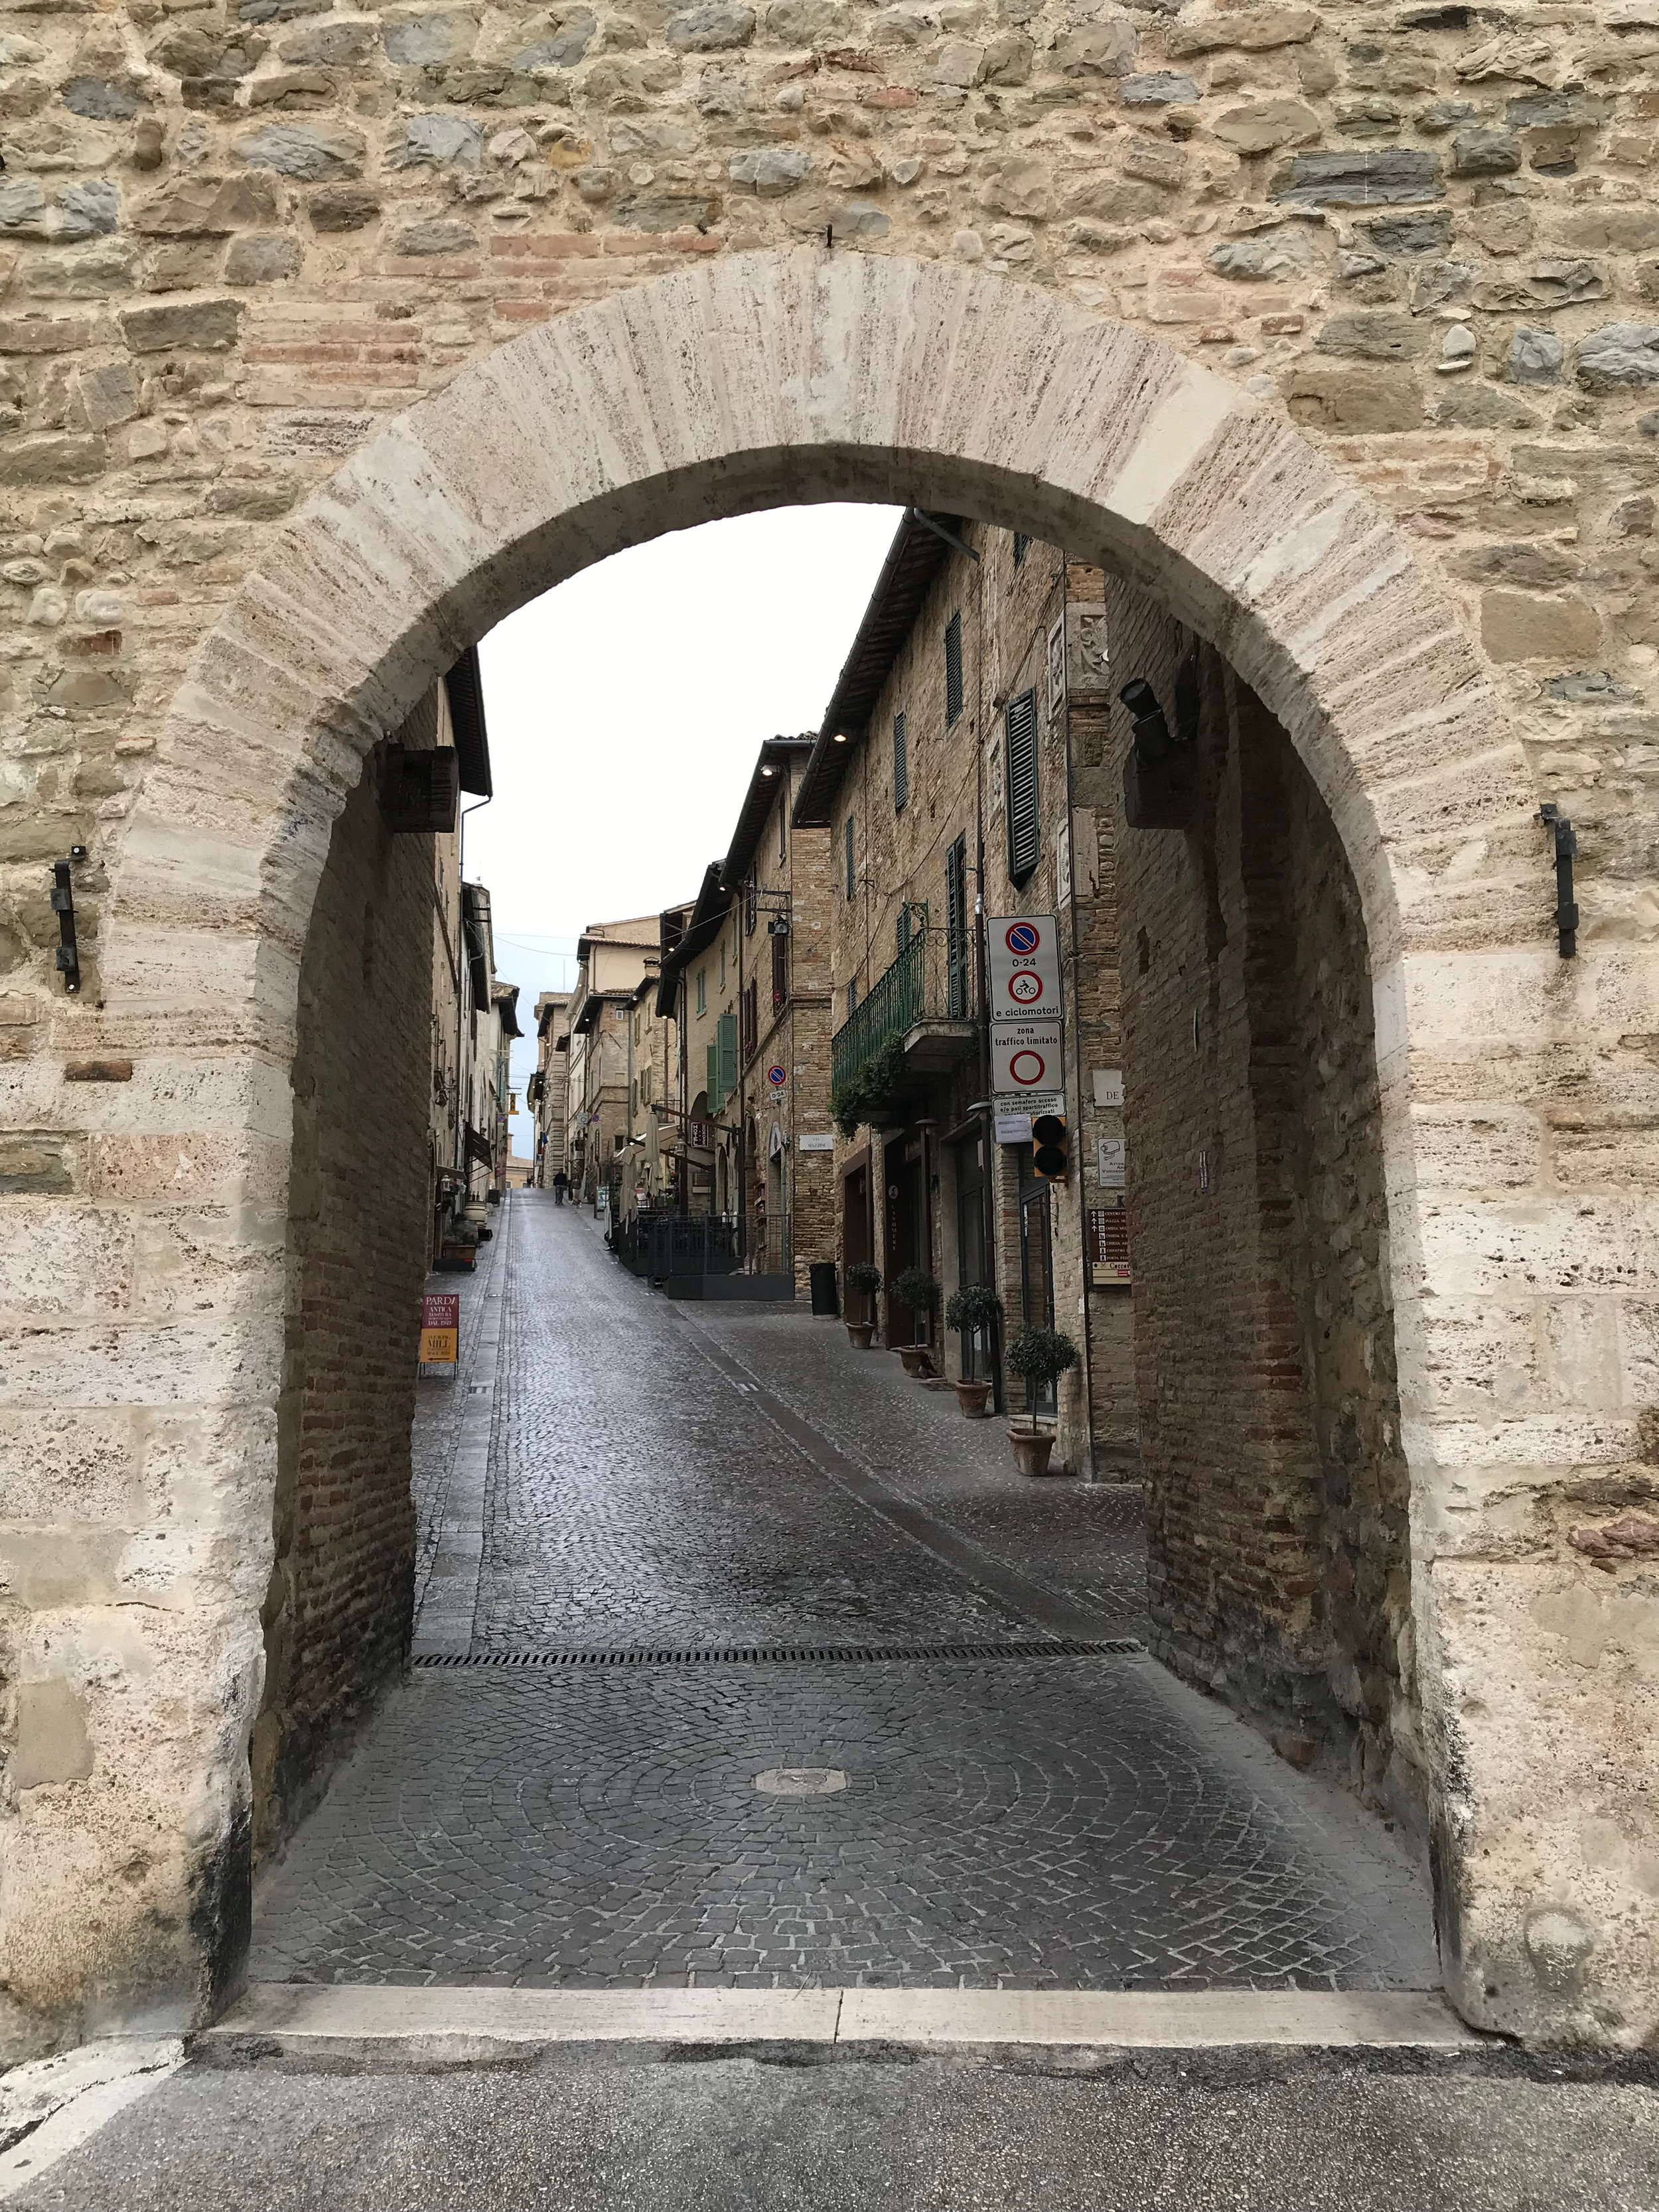 An ancient city entrance (still used by cars today).